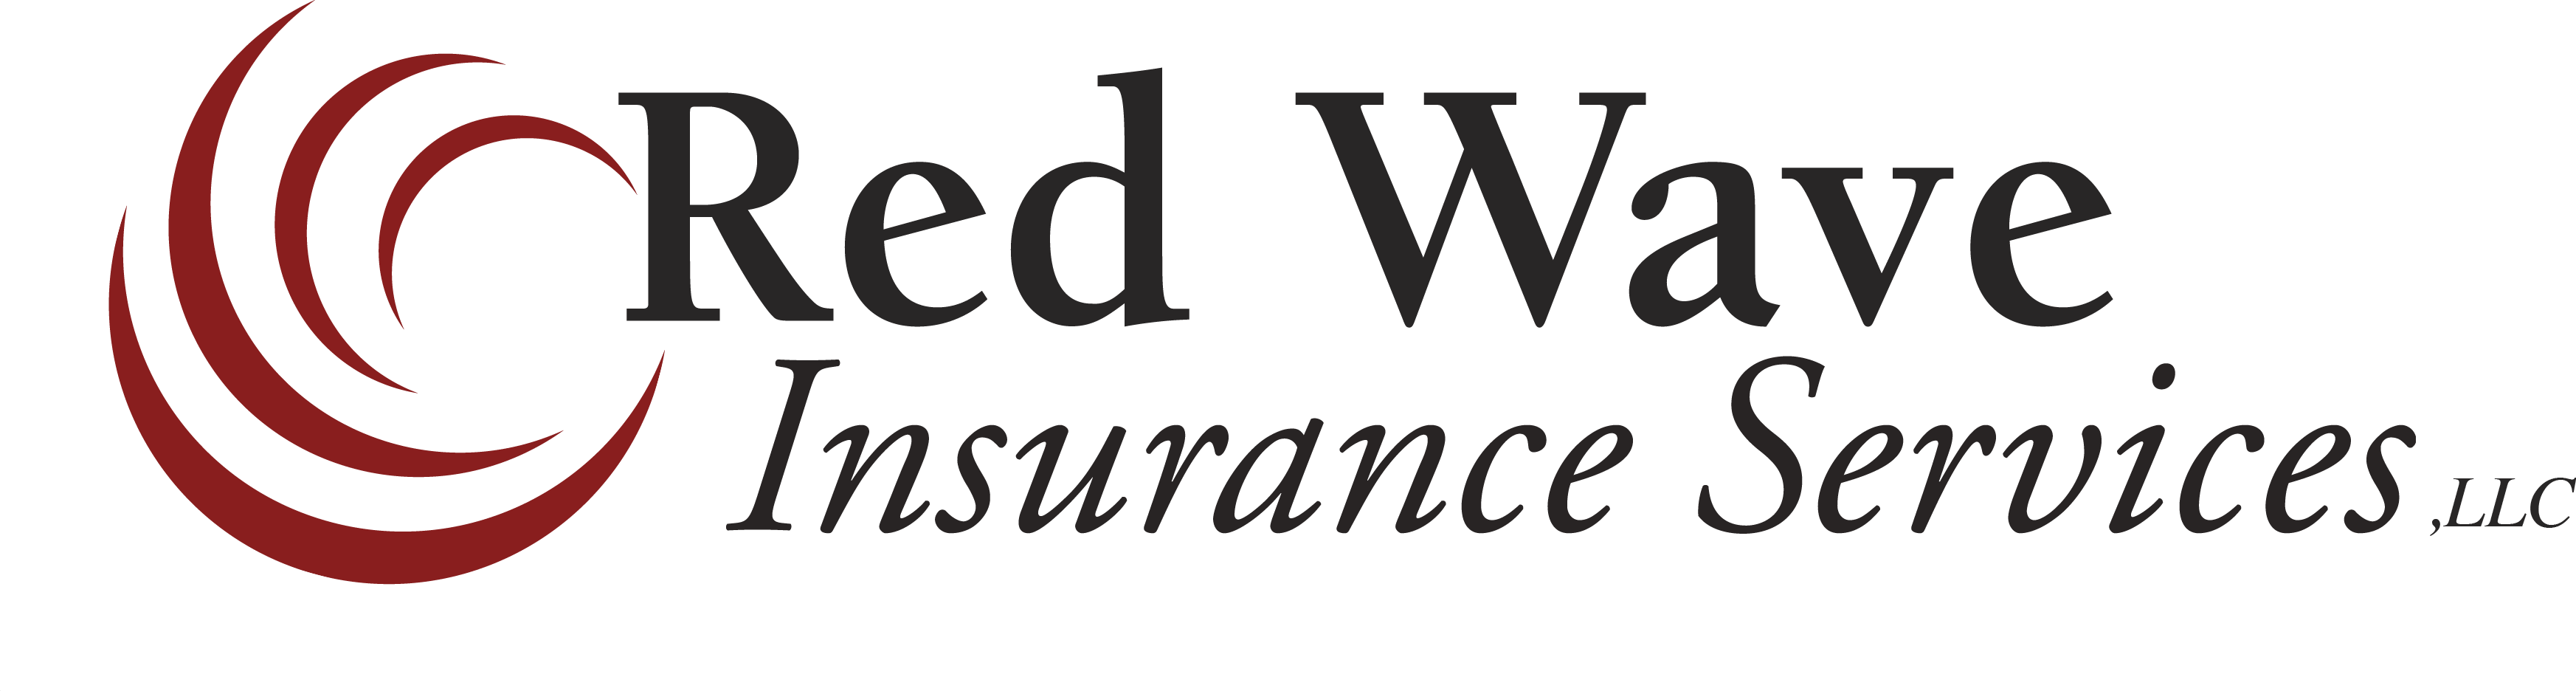 Red Wave Insurance Services